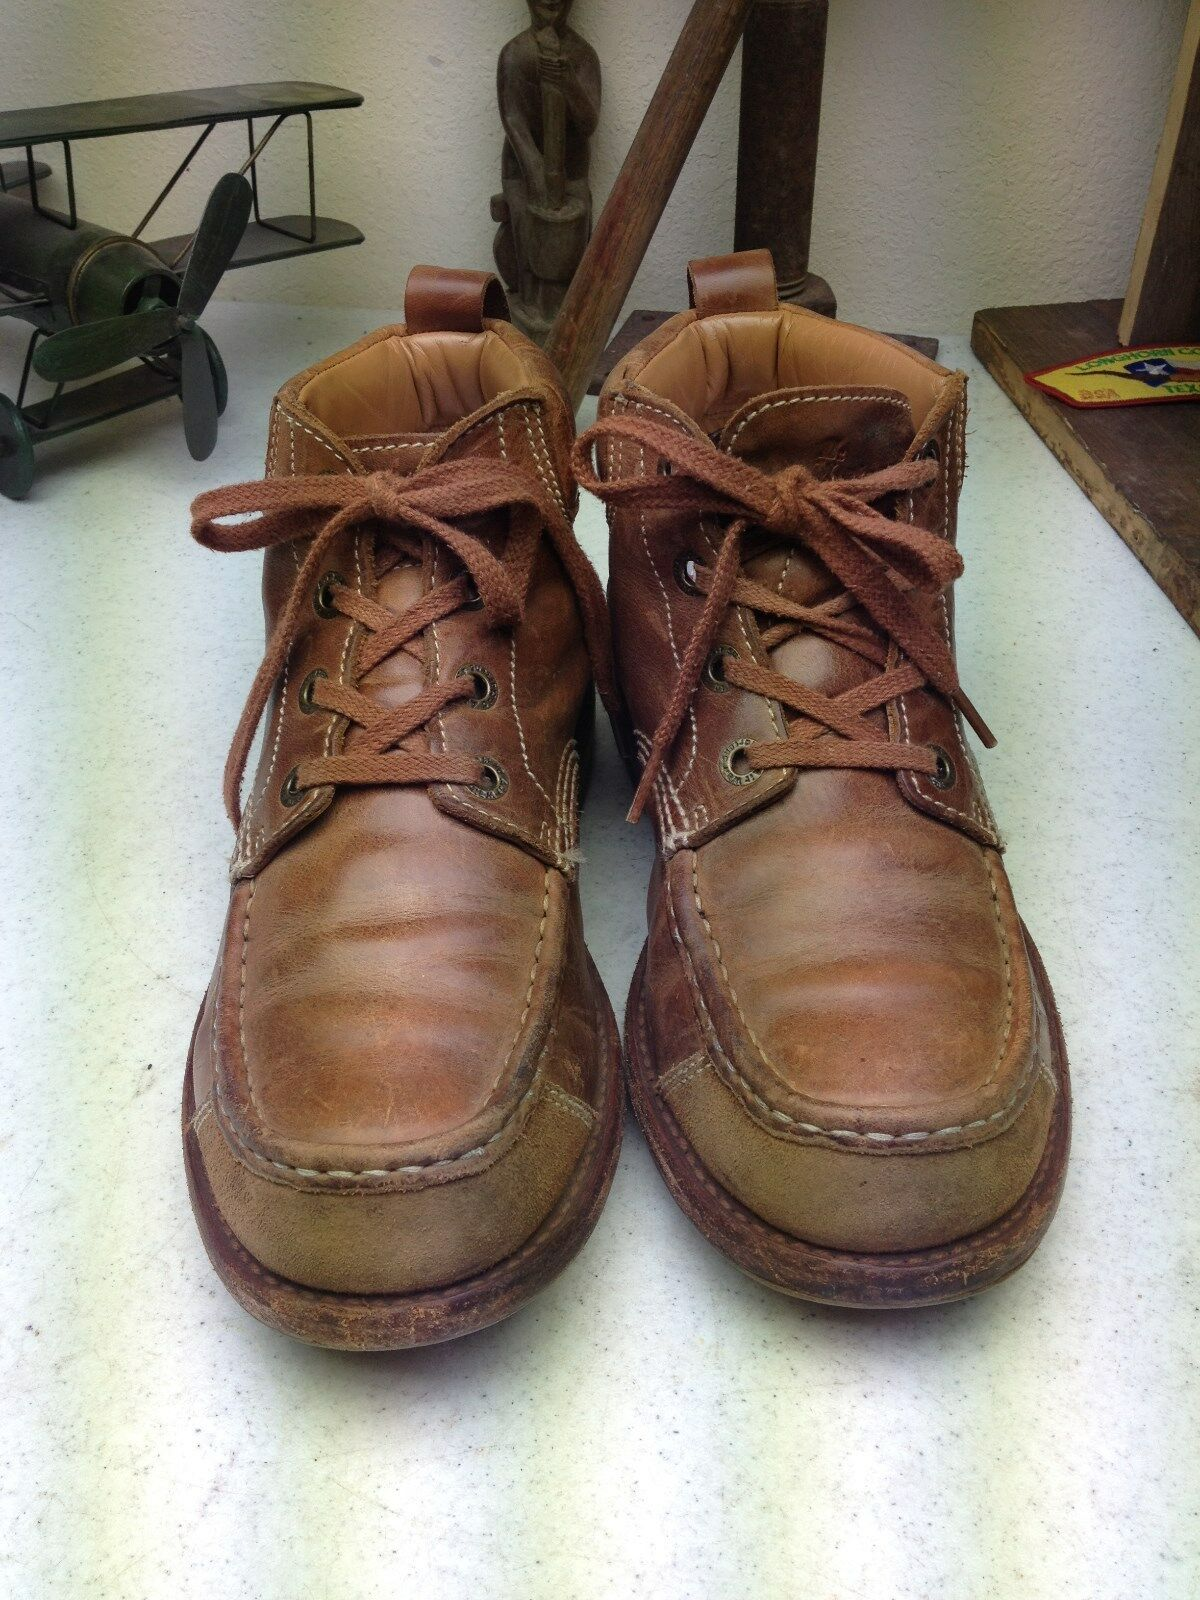 DR. MARTENS BROWN LEATHER LACE CHORE UP ENGINEER MOTORCYCLE ANKLE CHORE LACE BOOTS SIZE 8 D 58fe05